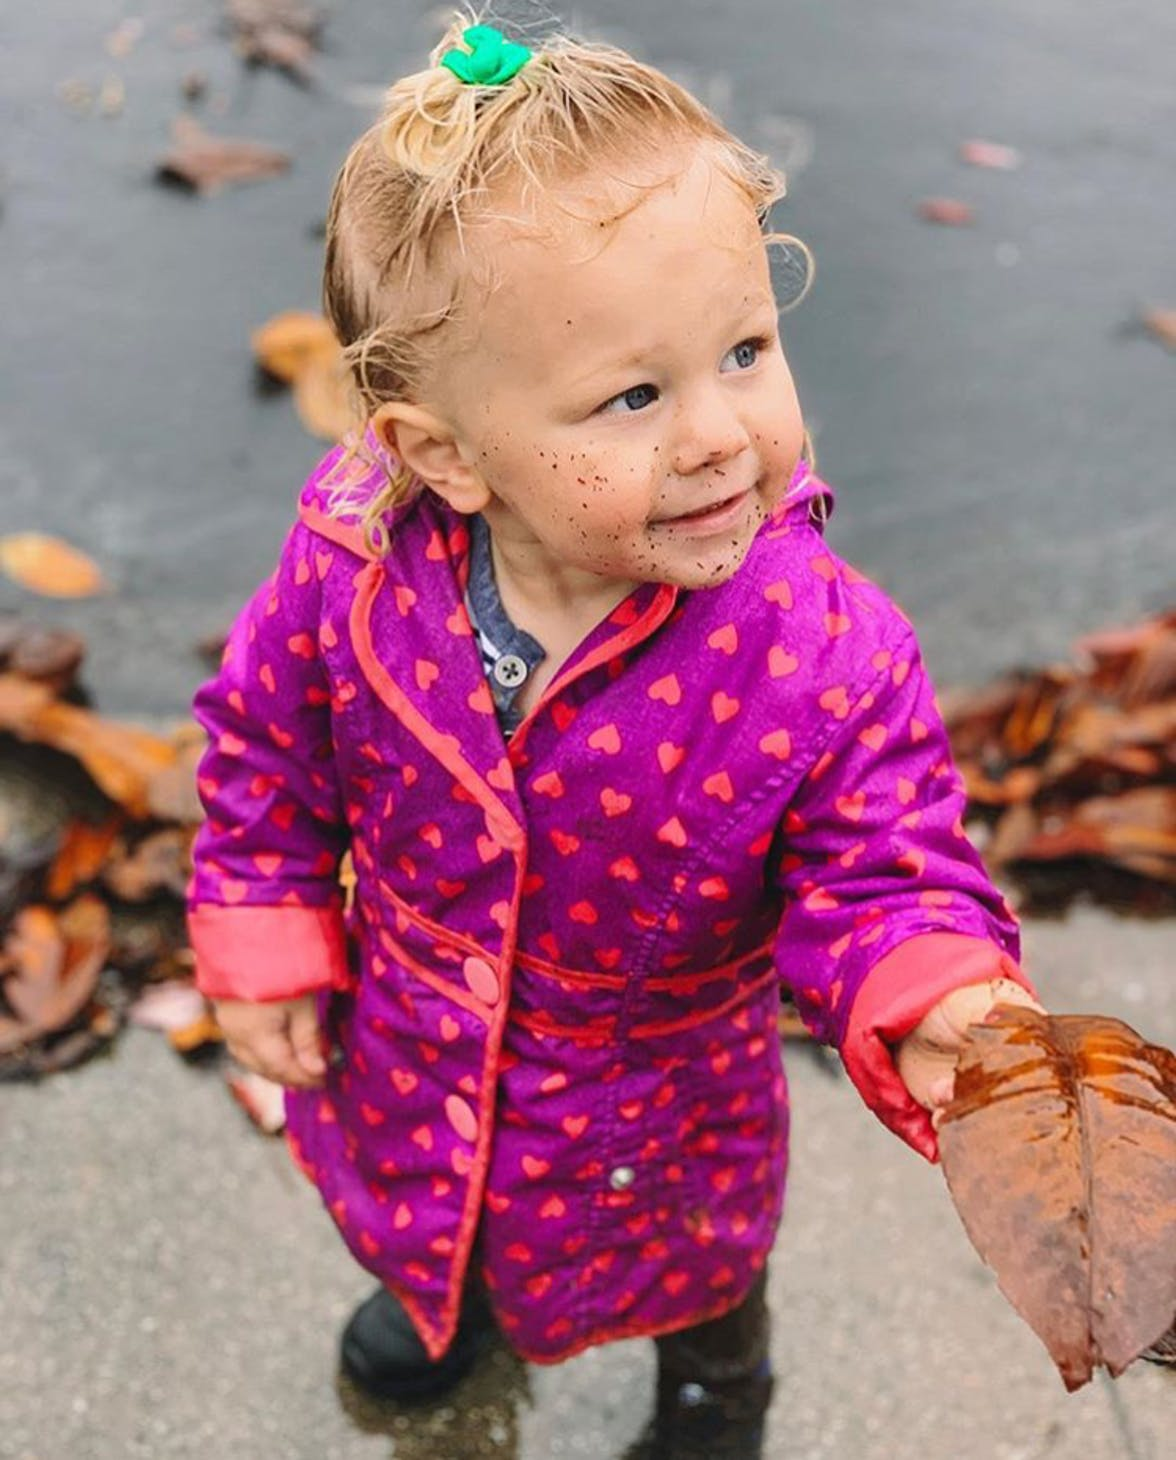 Toddler standing outside with dirt on their face while holding a leaf